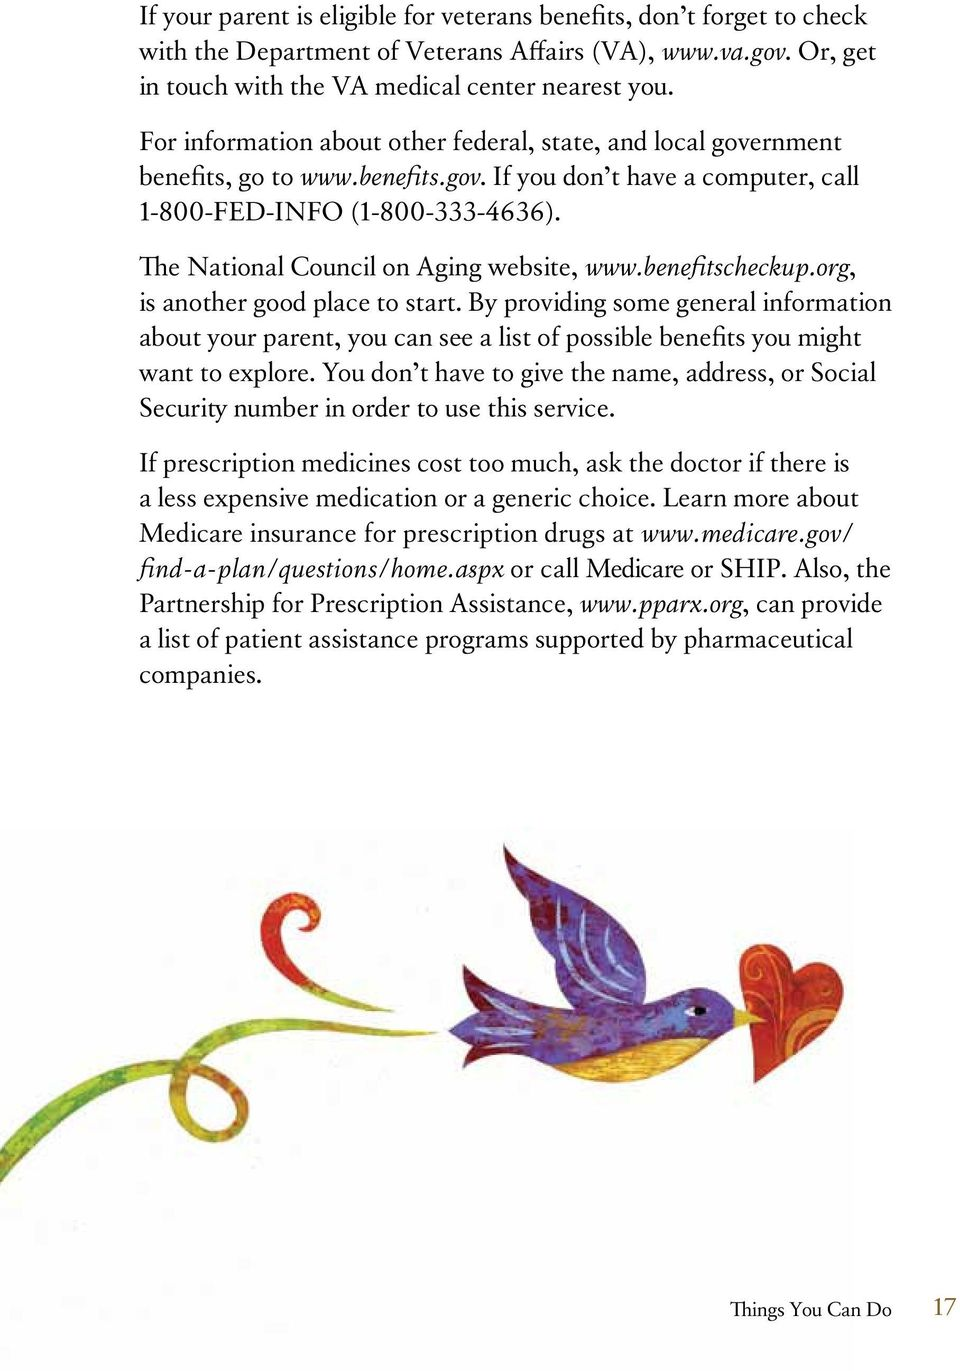 The National Council on Aging website, www.benefitscheckup.org, is another good place to start.